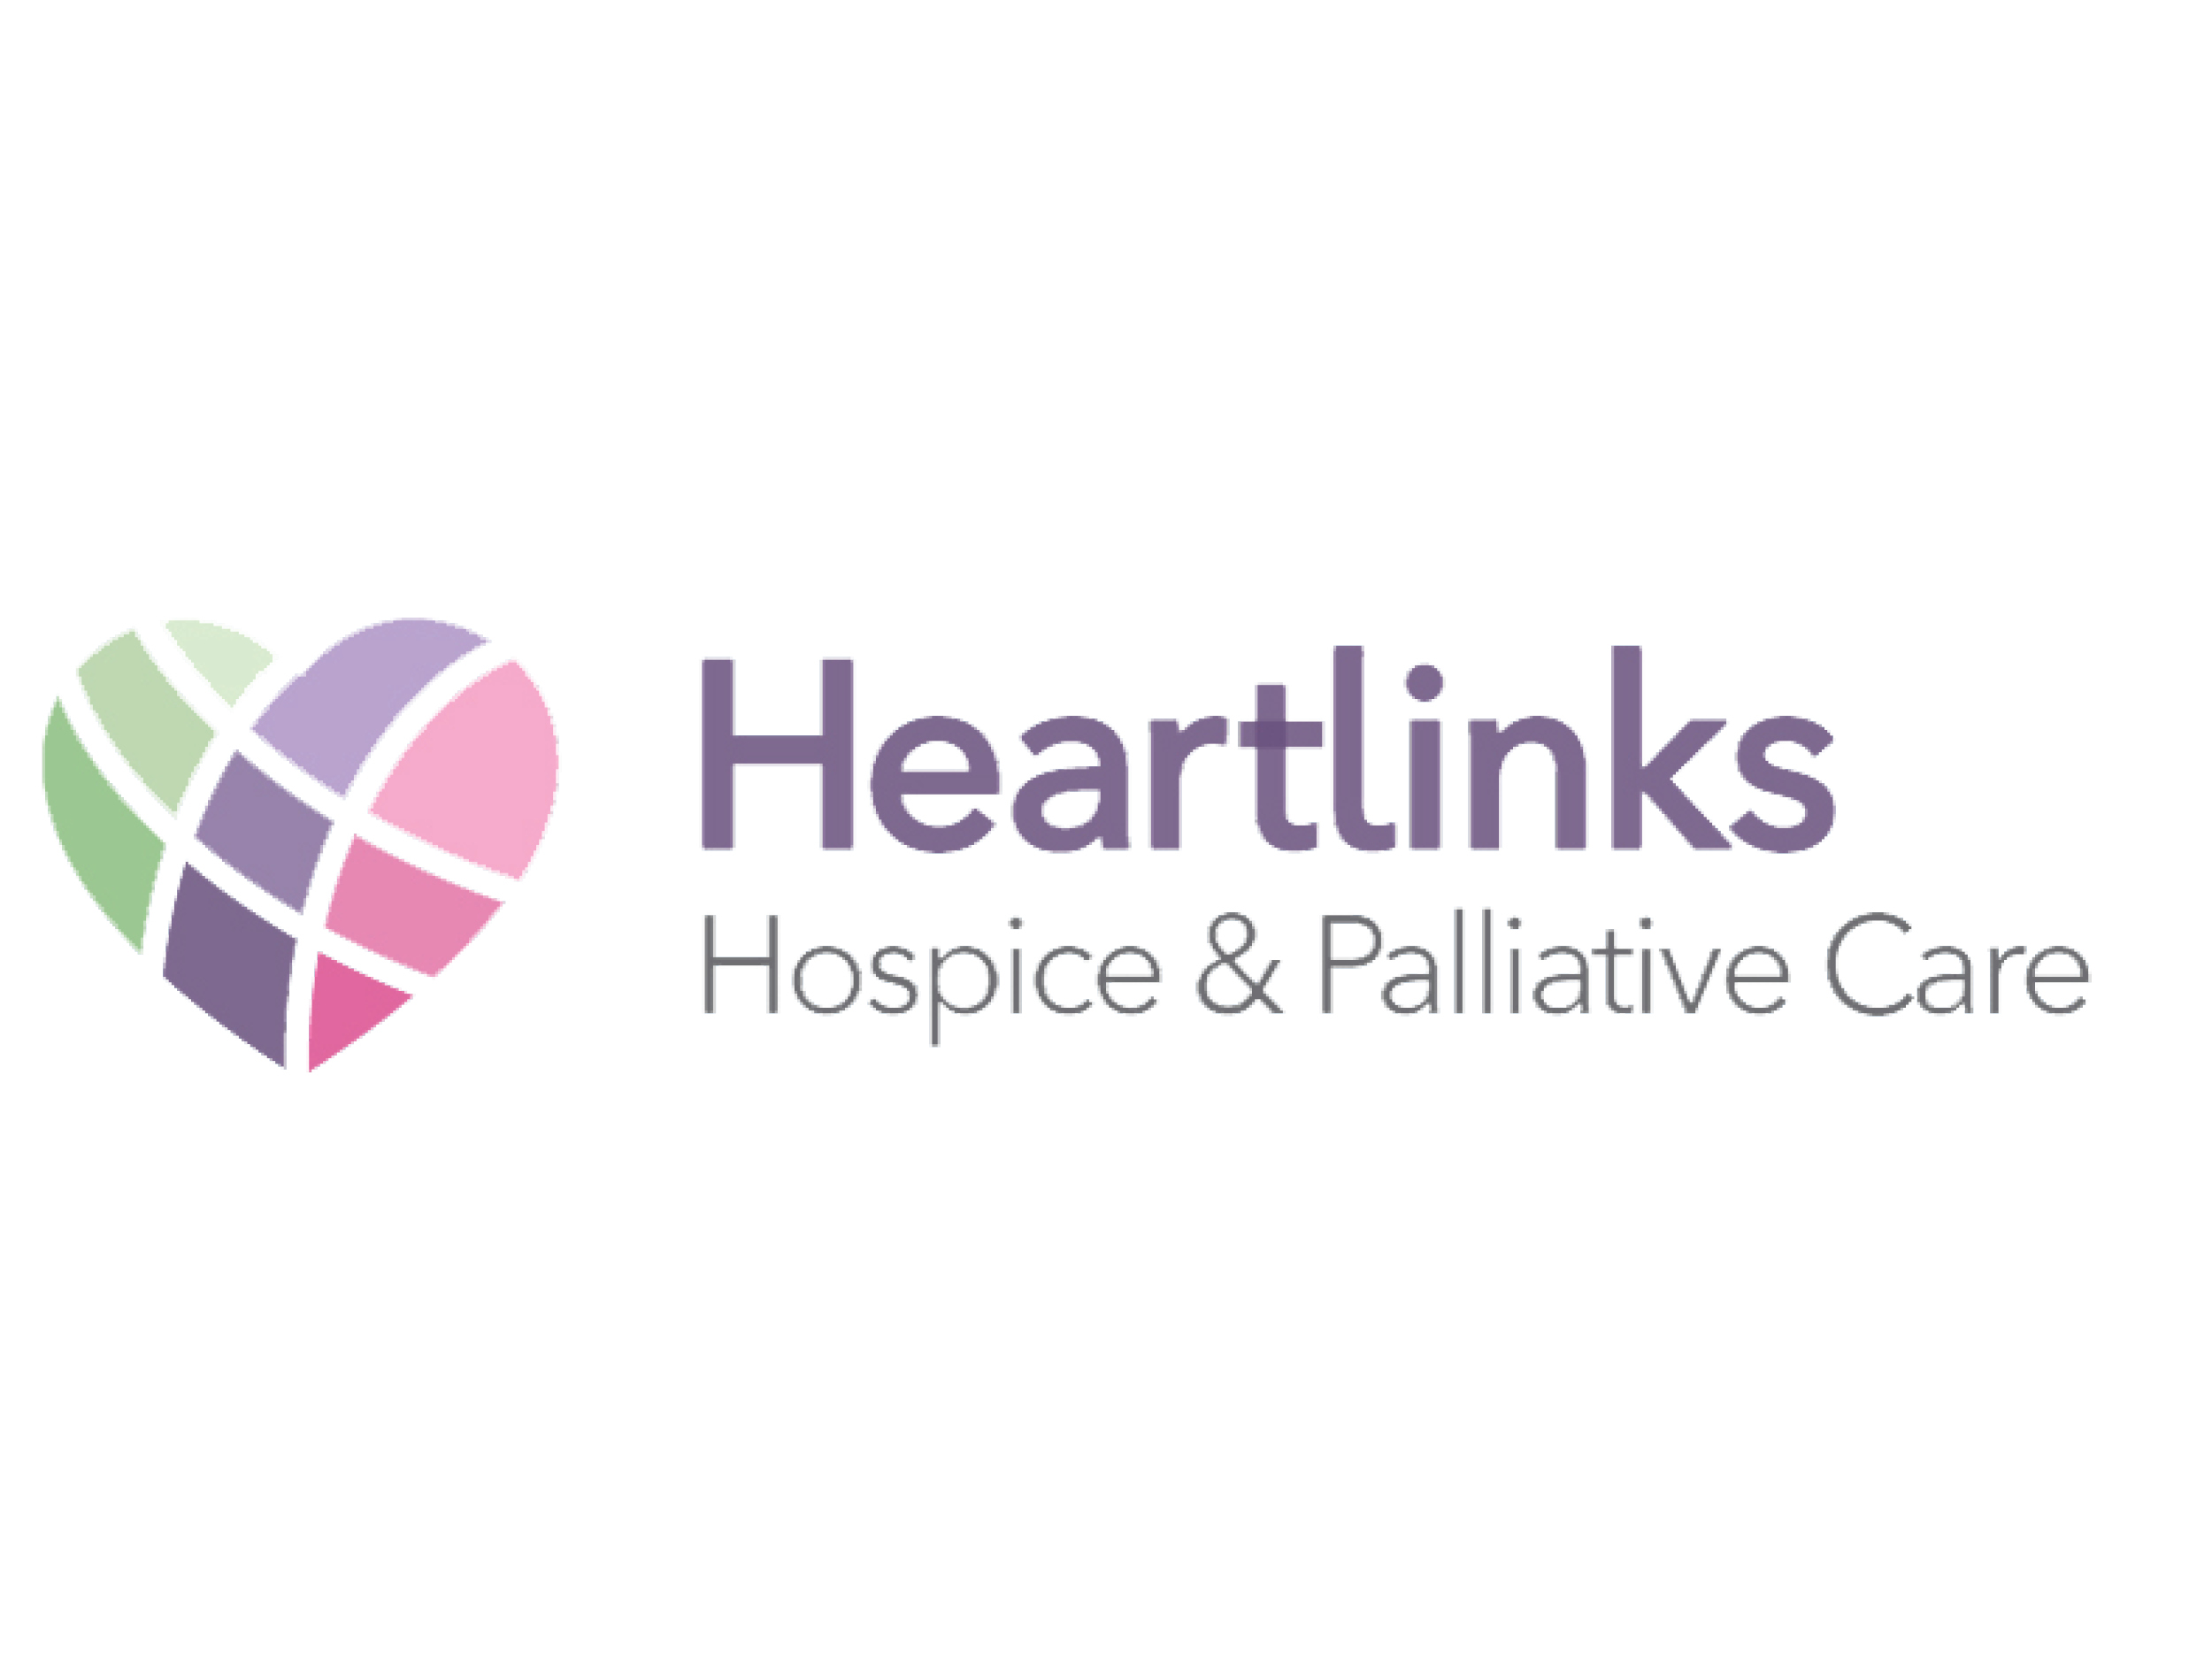 Feature: http://heartlinkshospice.org/